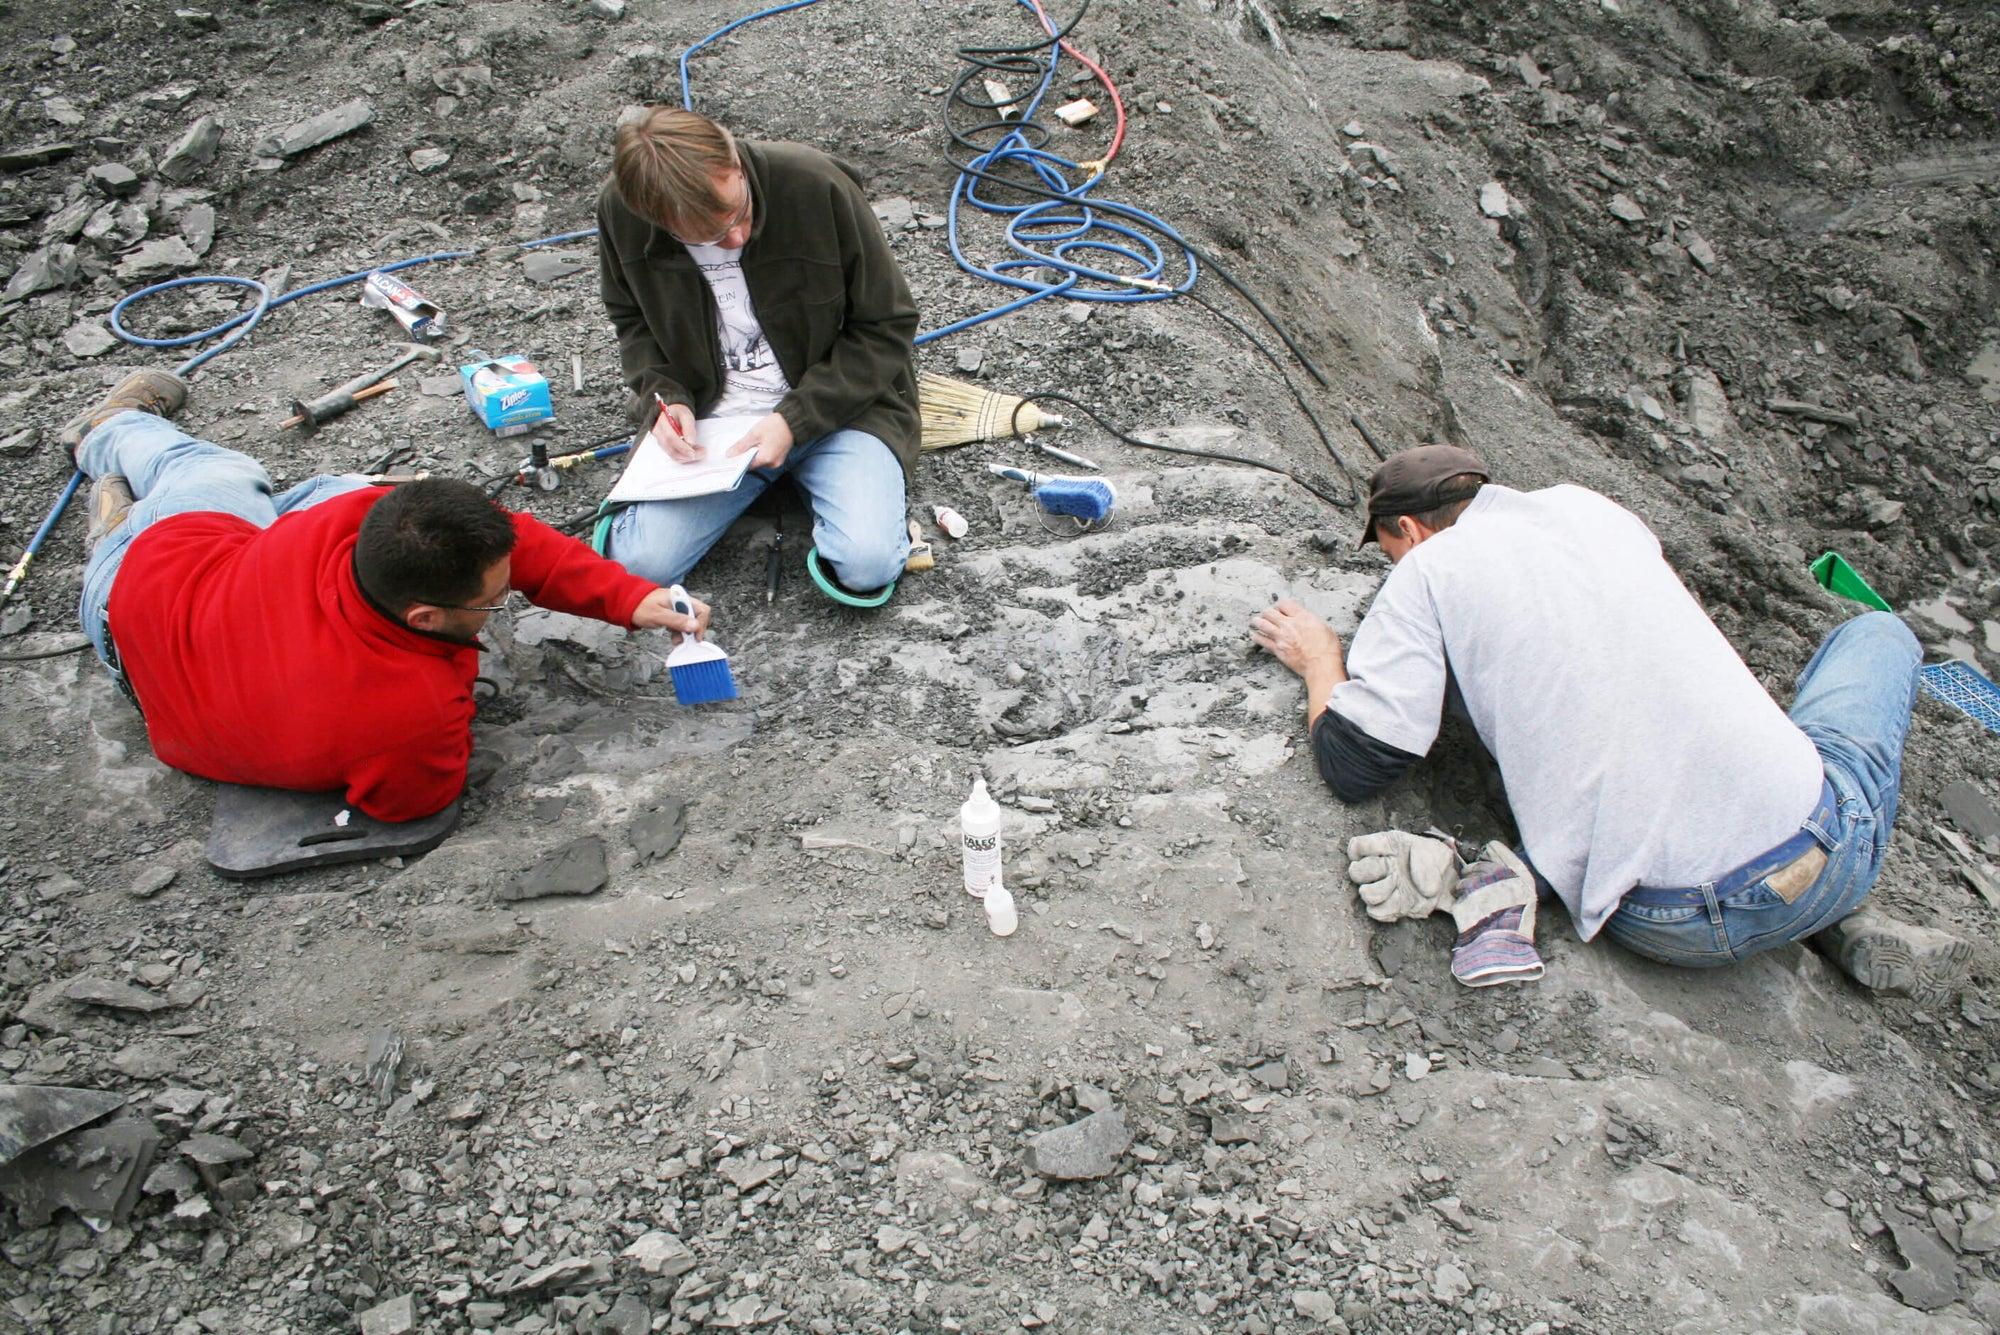 Craving adventure? Put on your traveler's hat, grab a tool, and dig for fossils like an amateur paleontologist